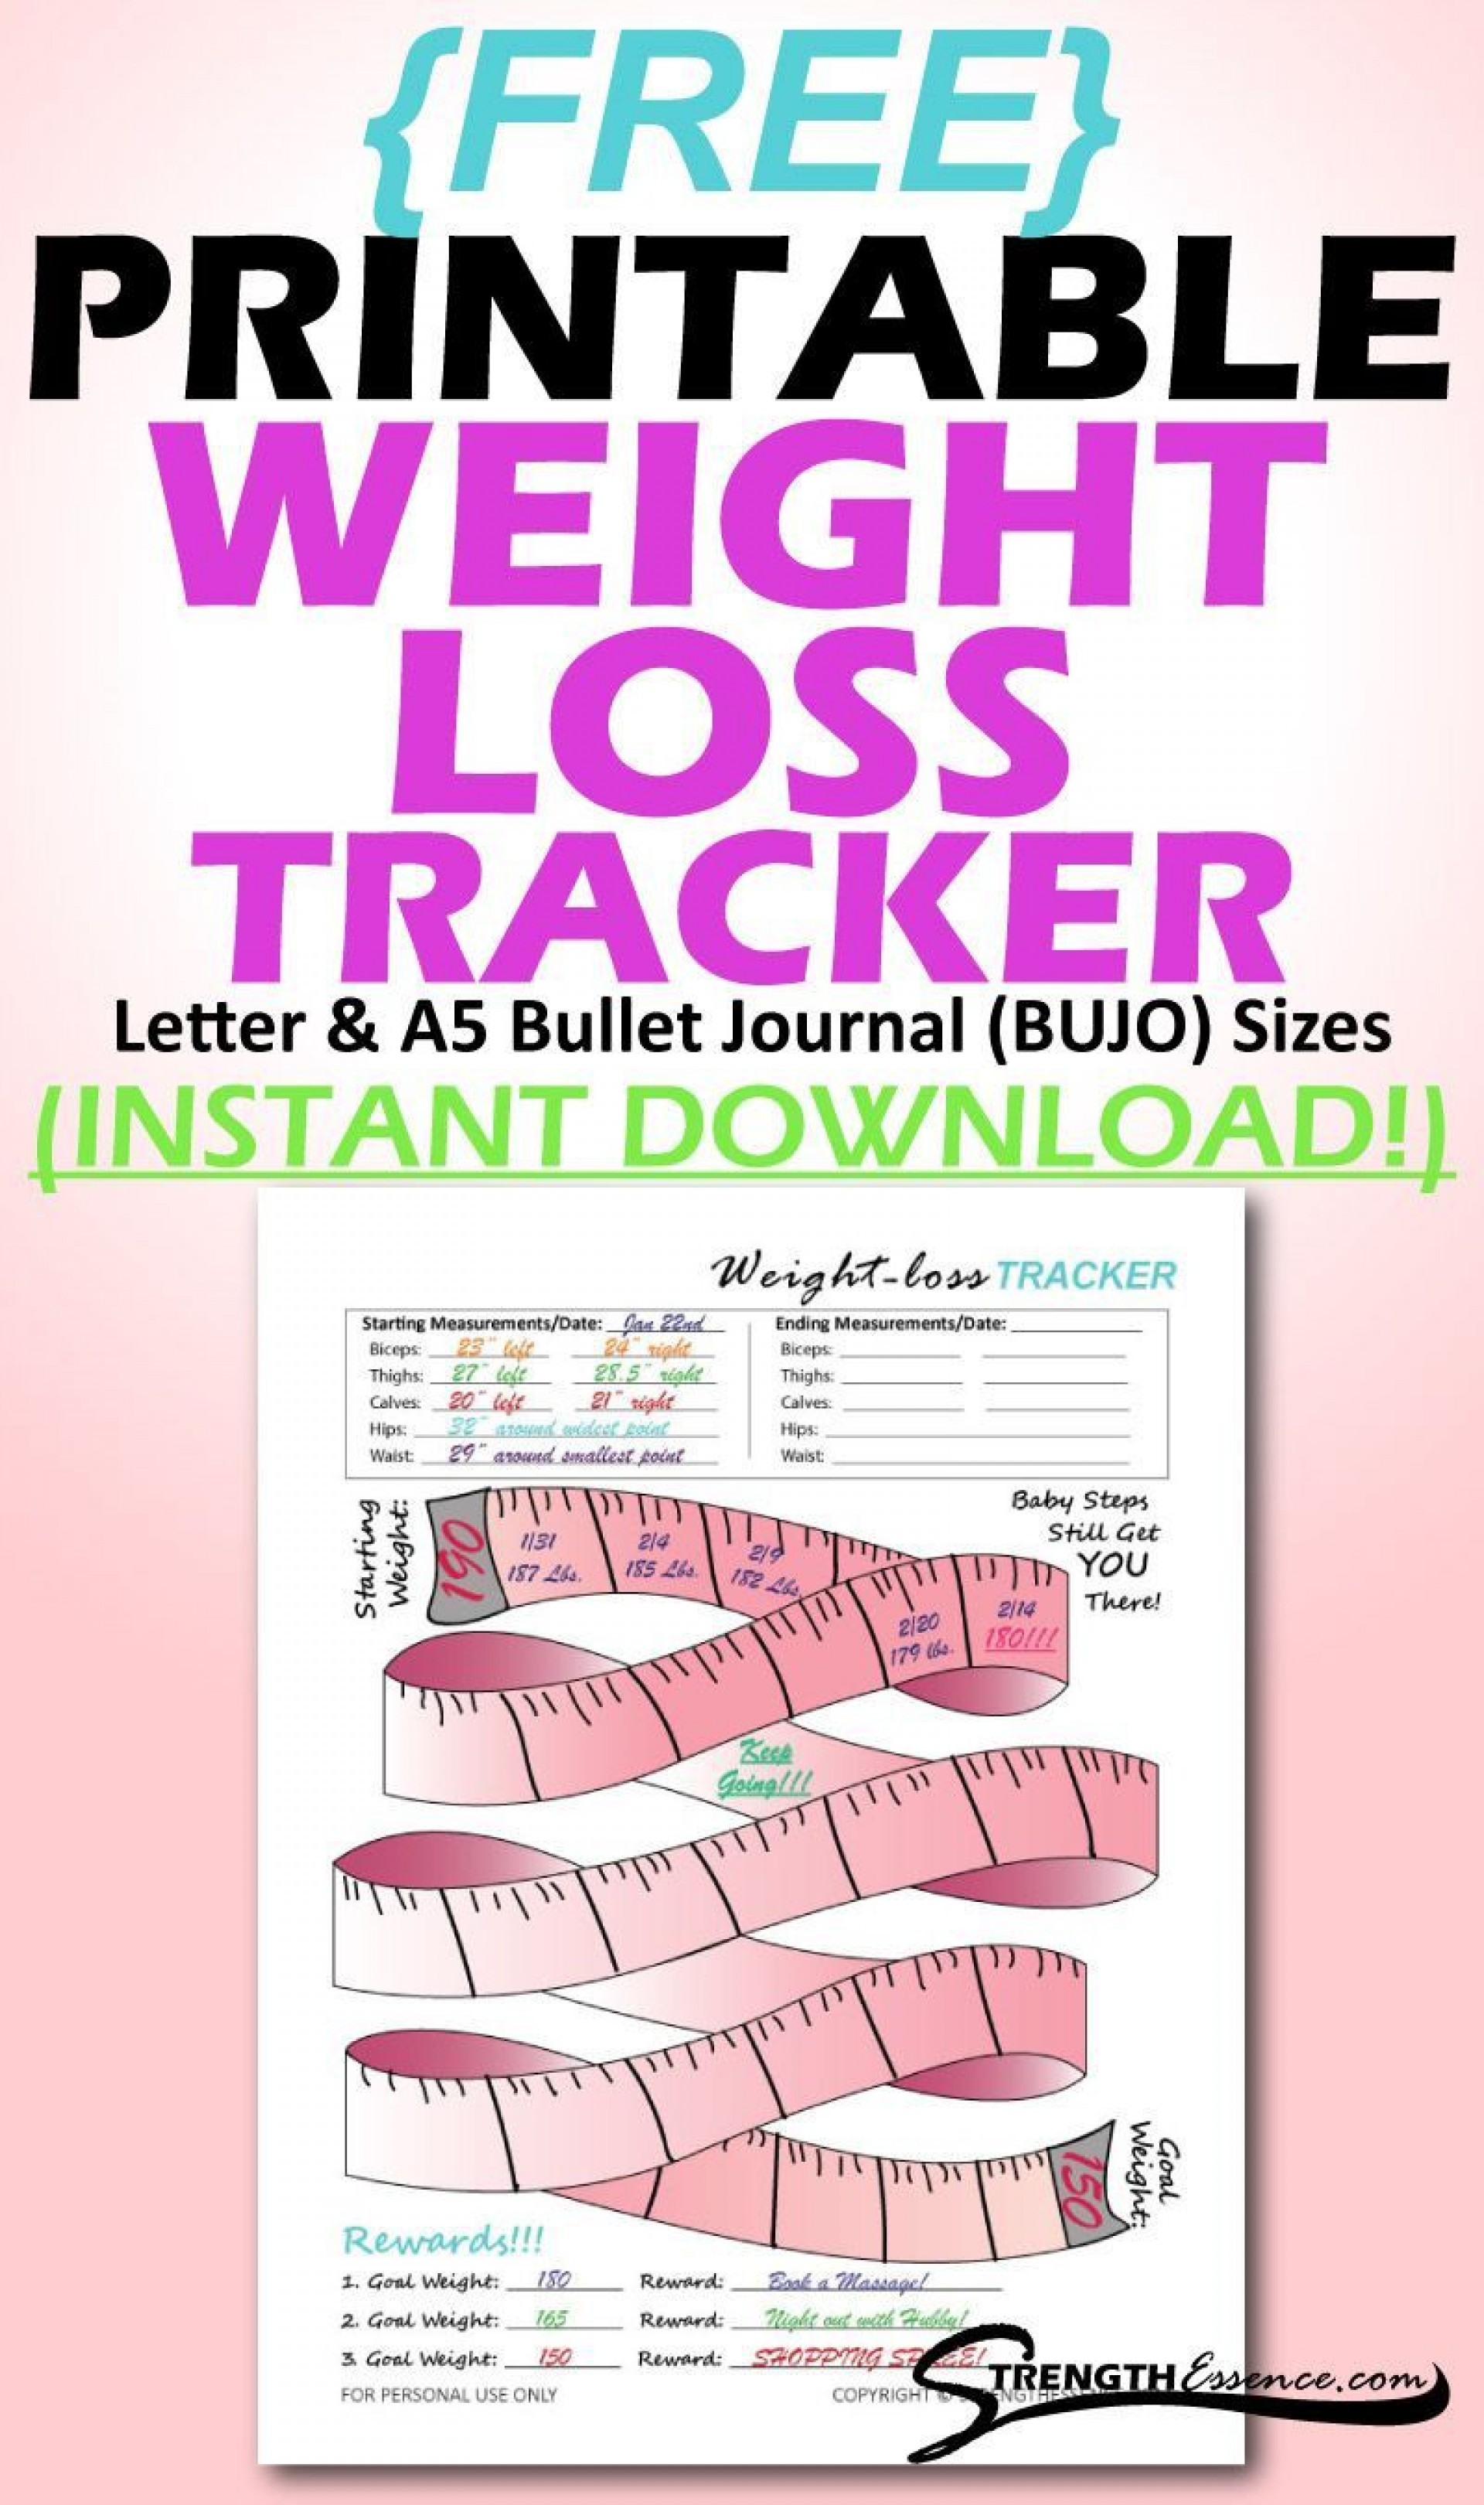 004 Shocking Weight Los Tracker Template Example  Weekly In Thi Body I Live Instagram 2019 20201920